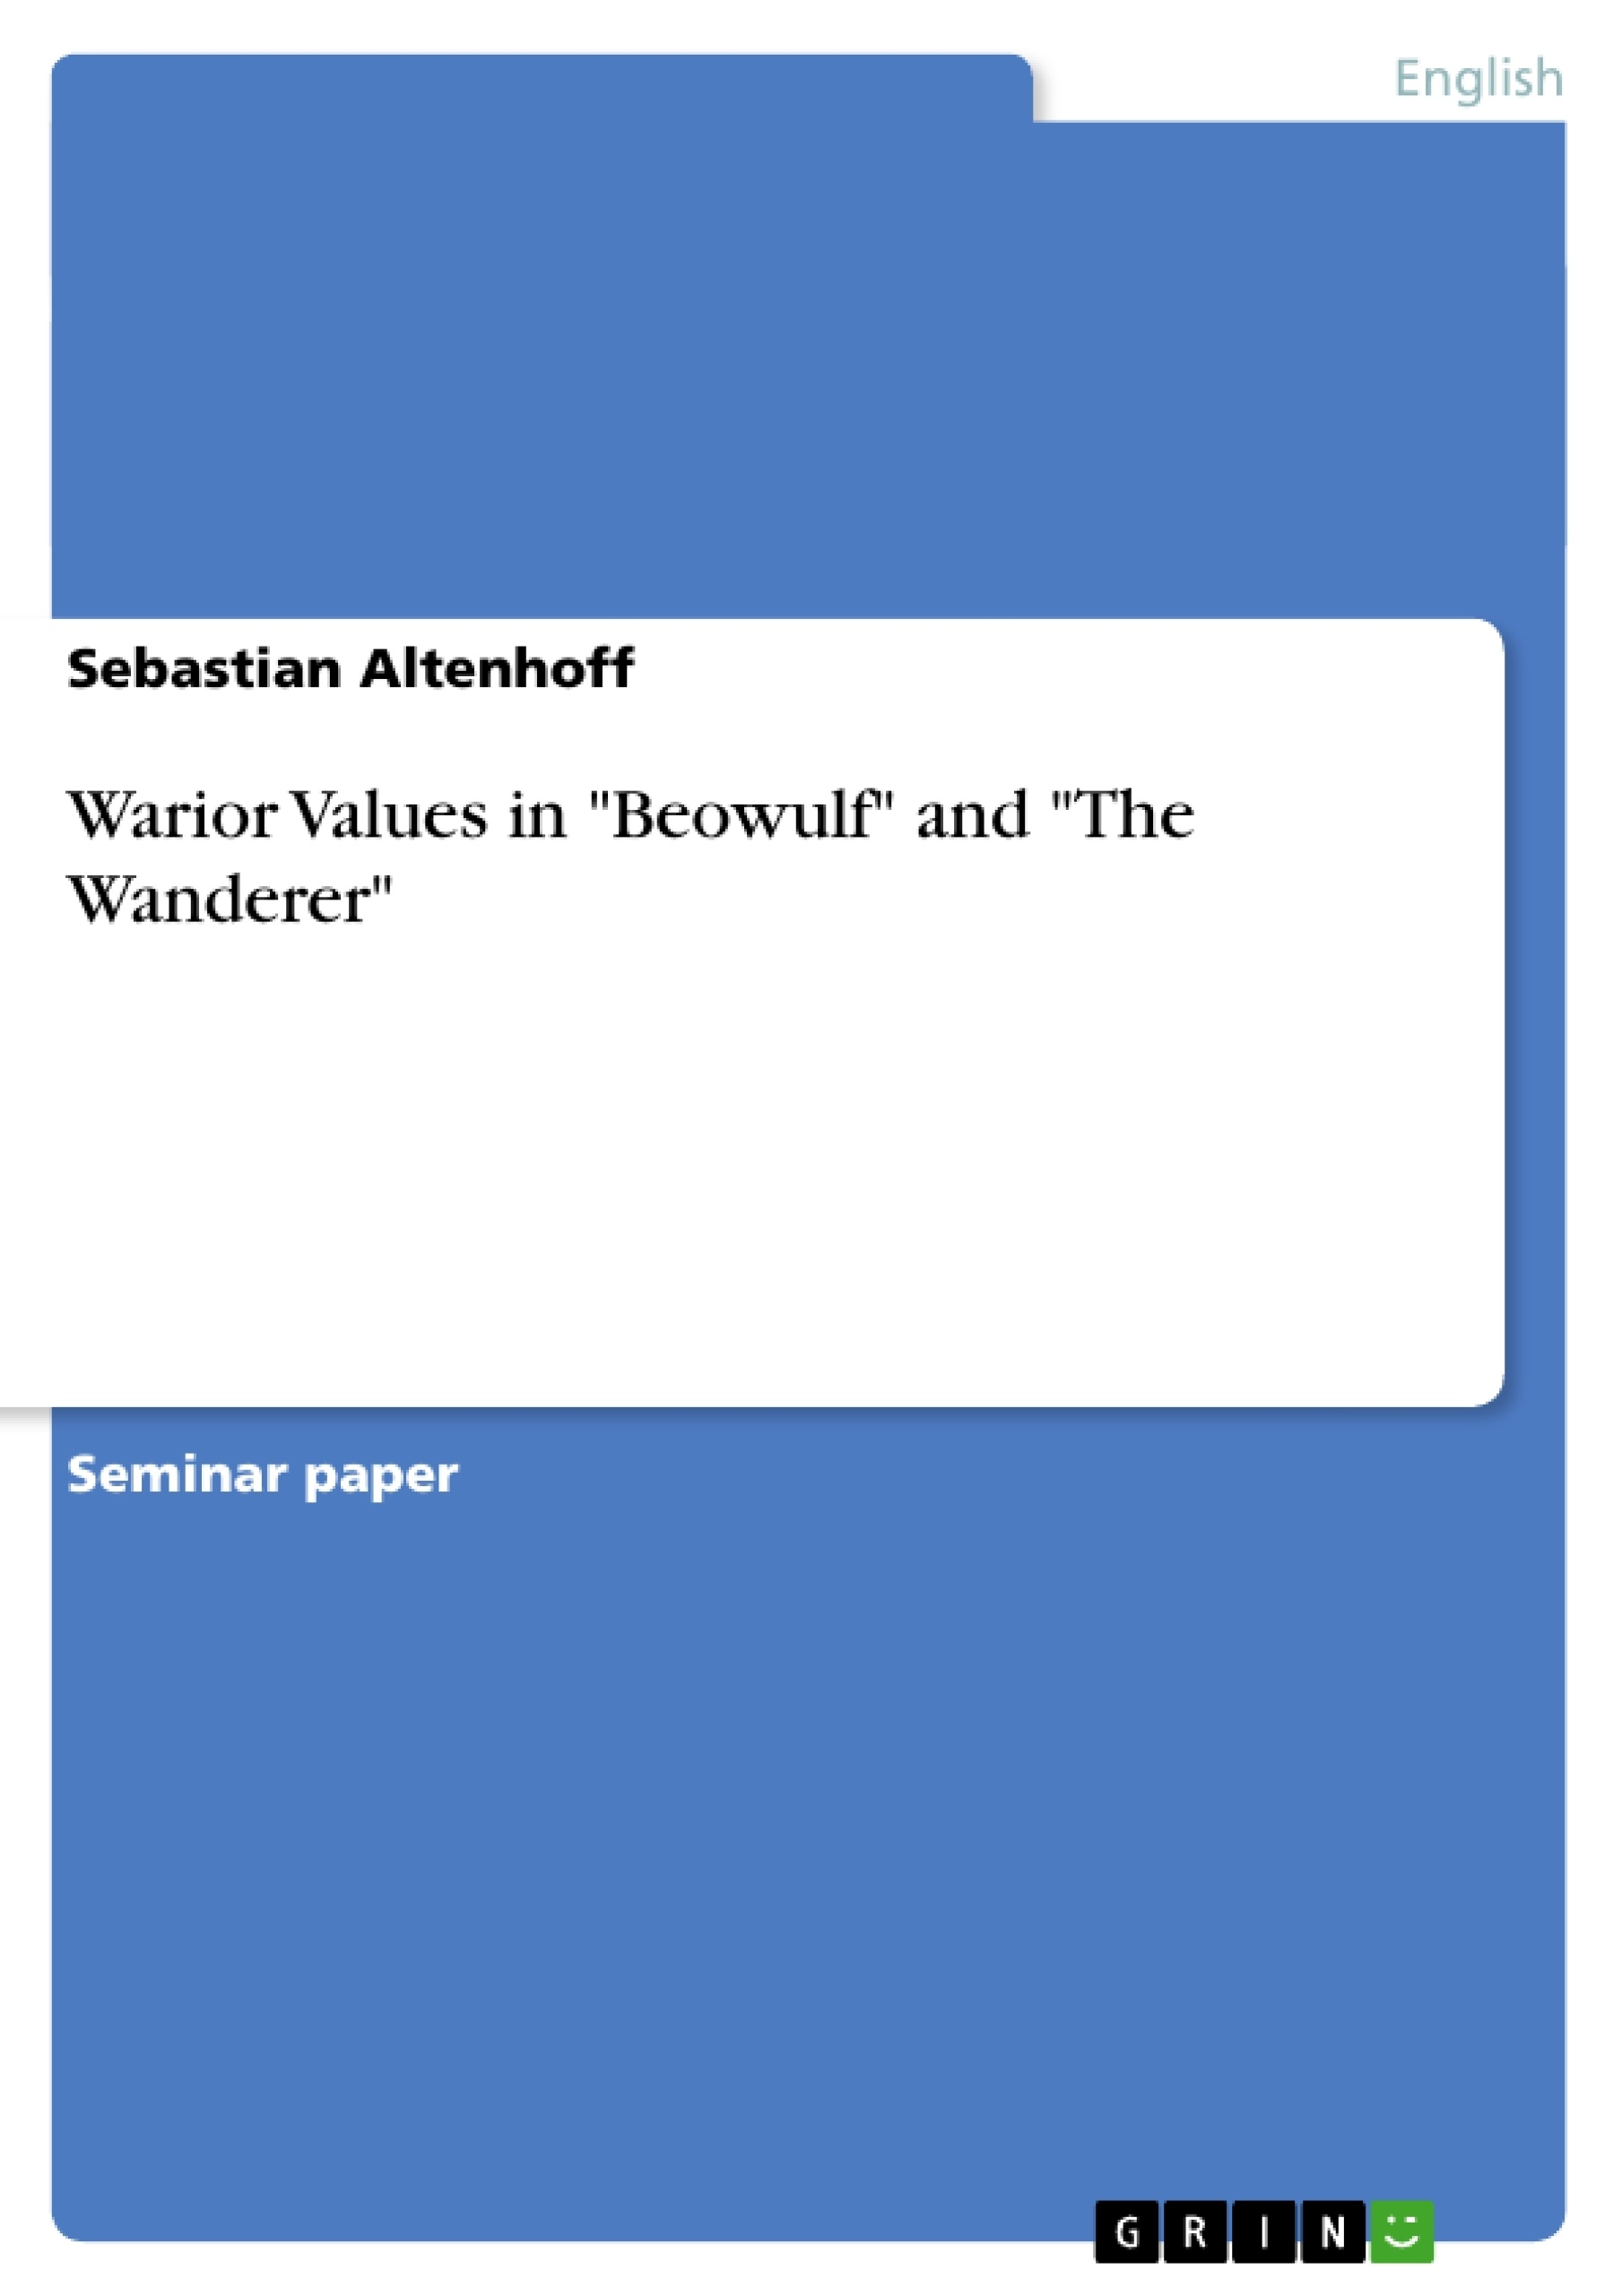 warior values in beowulf and the wanderer publish your upload your own papers earn money and win an iphone 7